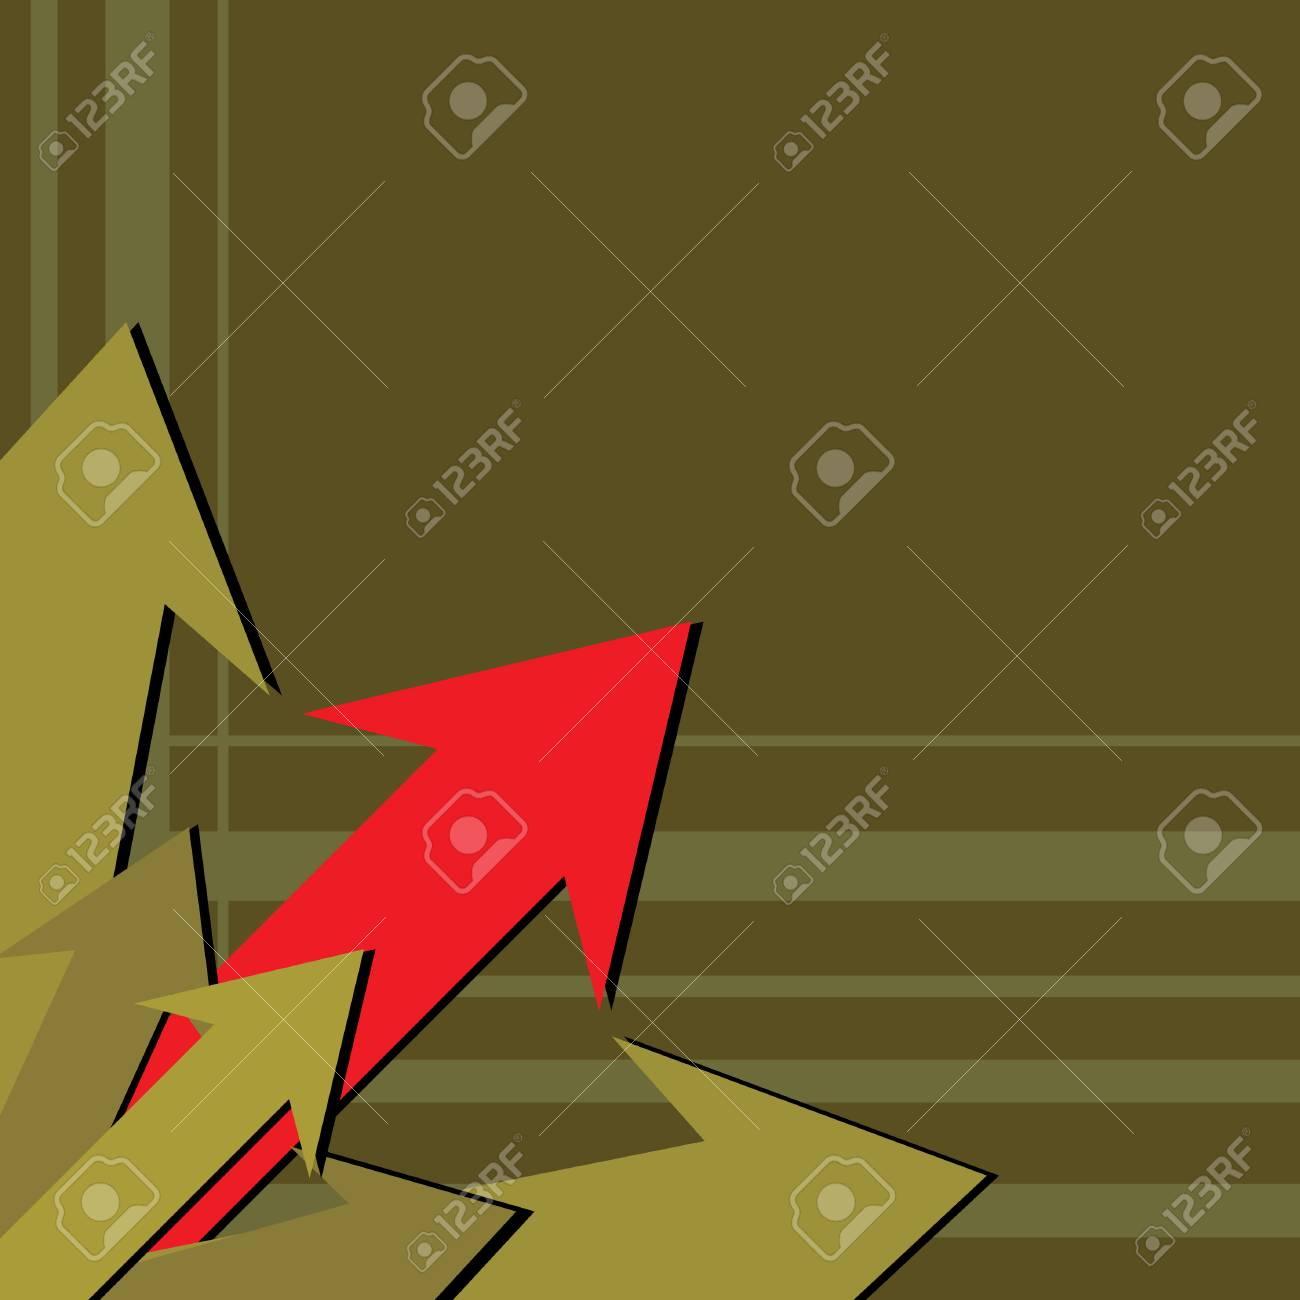 Red arrow pointing up illustration Stock Vector - 2919948